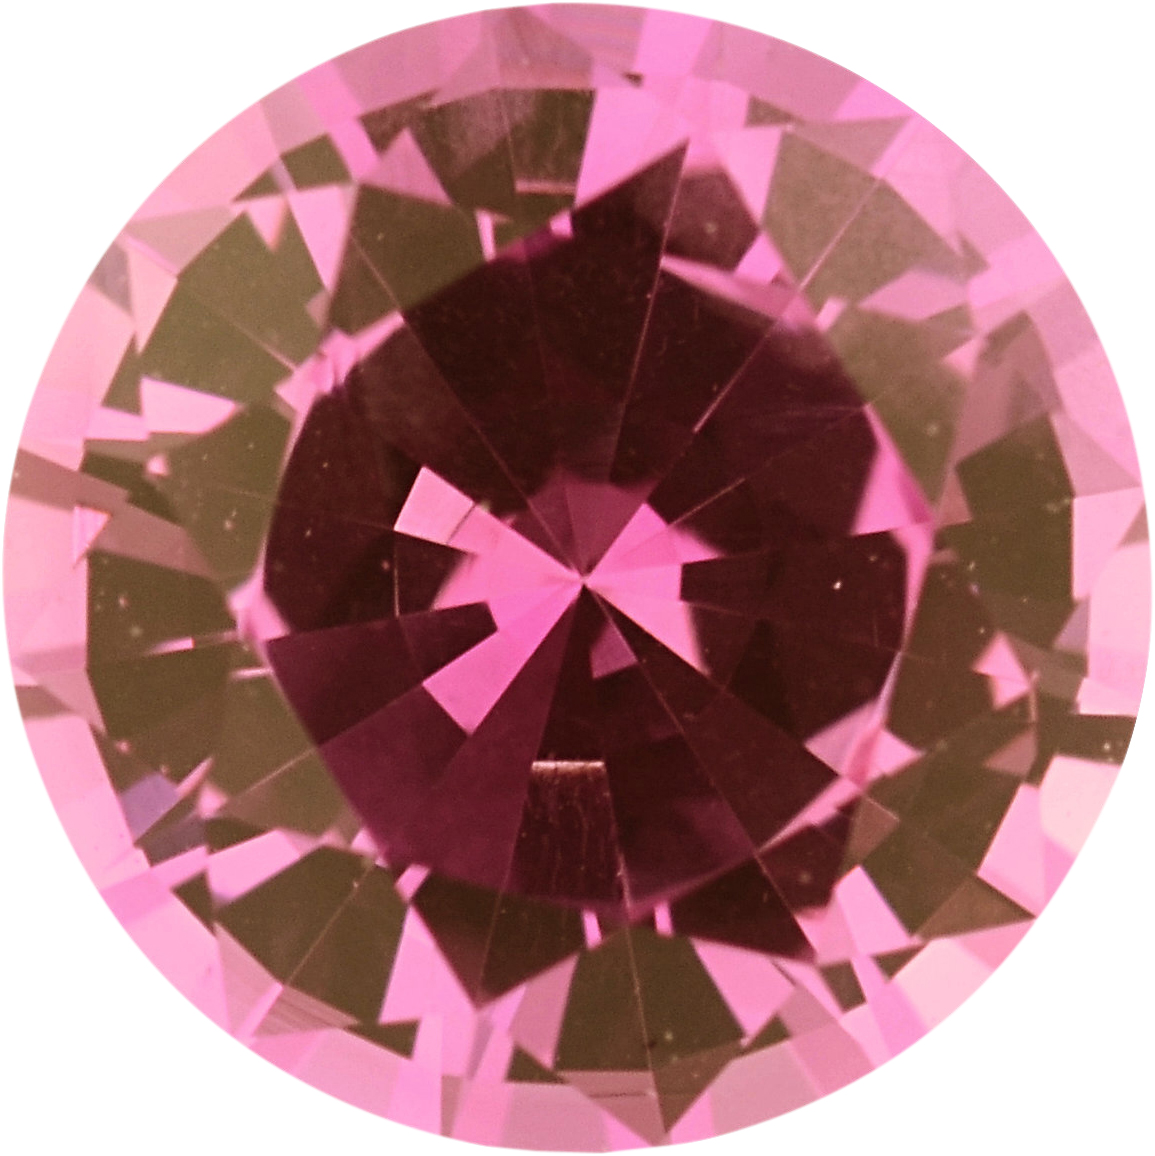 Quality Sapphire Loose Gem in Round Cut, Light Purplish Red, 5.55 mm, 0.77 Carats